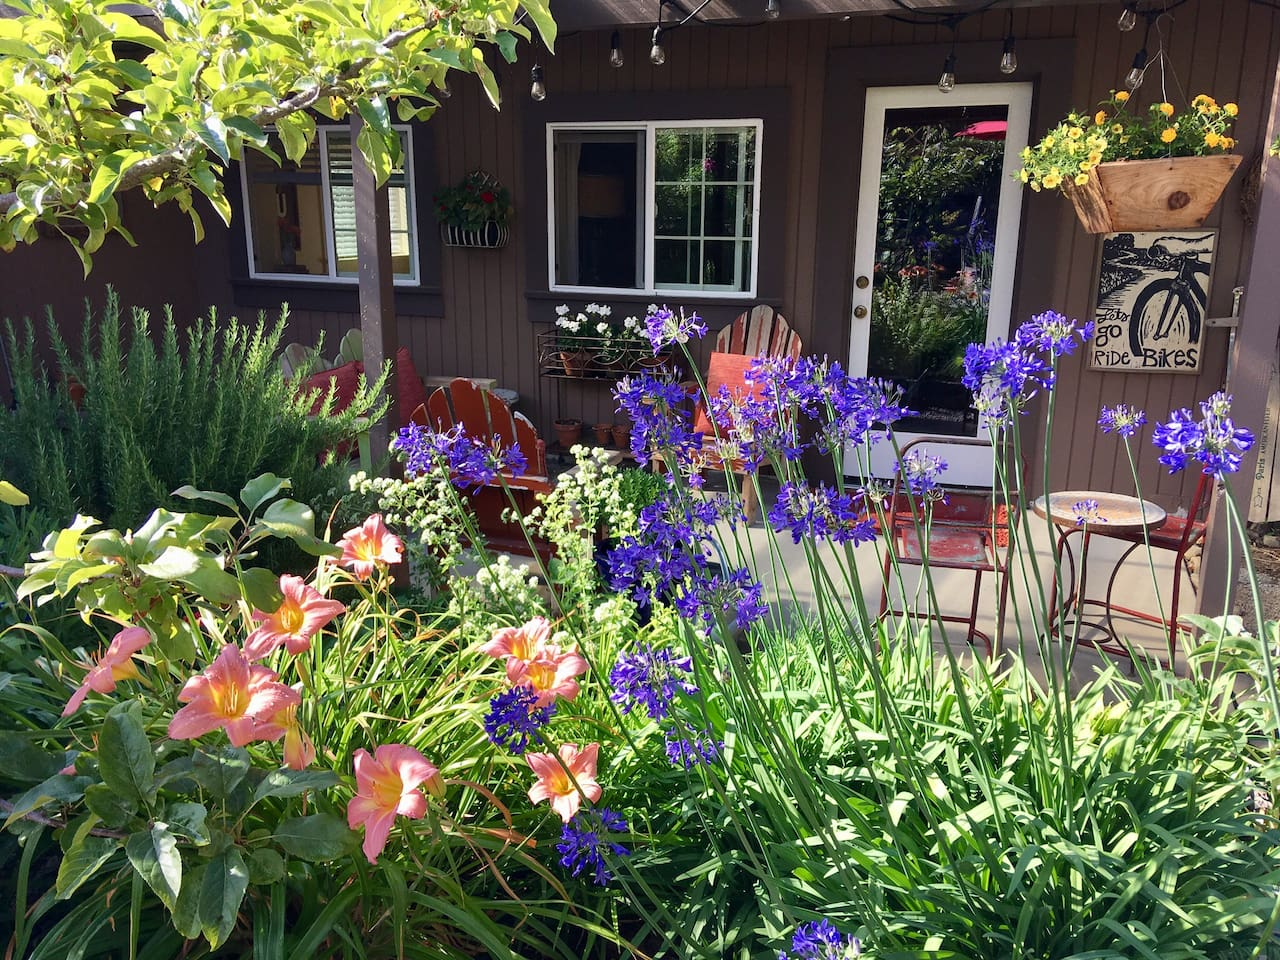 Welcome to the little Hummingbird Hideaway. As soon as you walk through the door, the patio garden will welcome you to sit back, relax and enjoy!